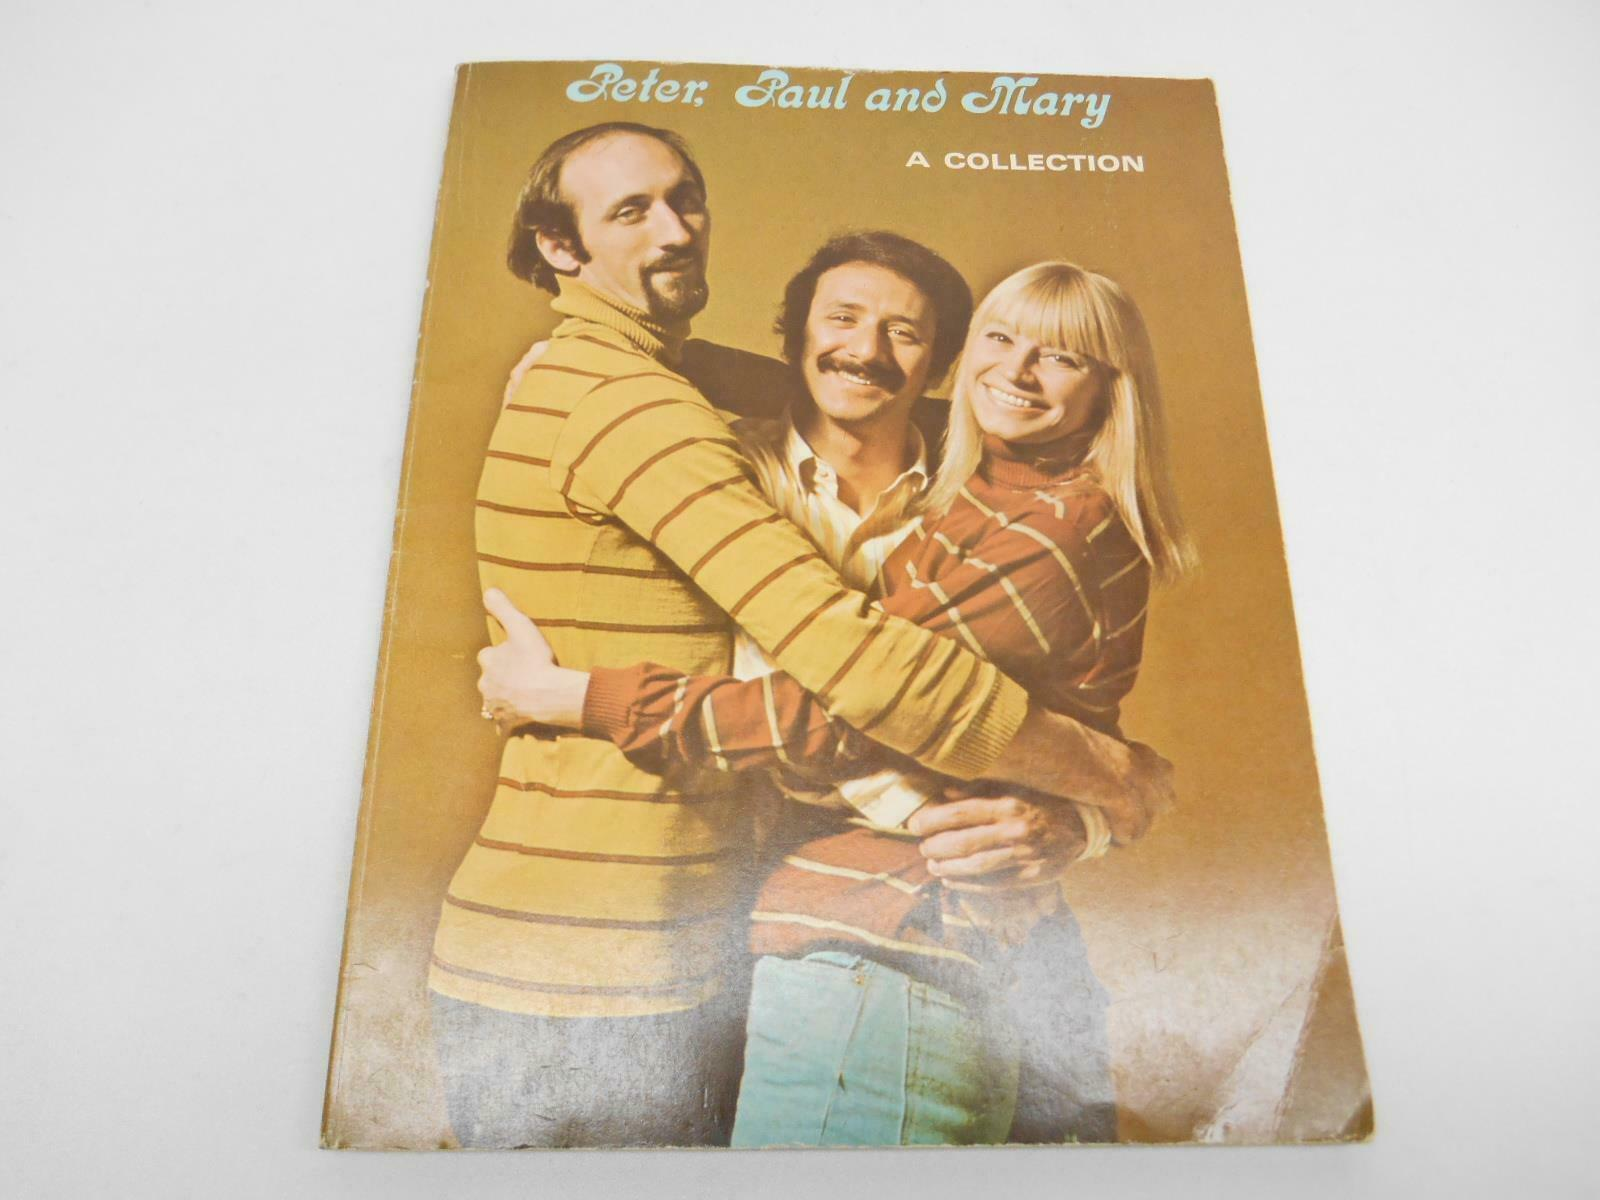 Old Vtg PETER PAUL & MARY A COLLECTION SONG BOOK Sheet Music  Rock & Roll